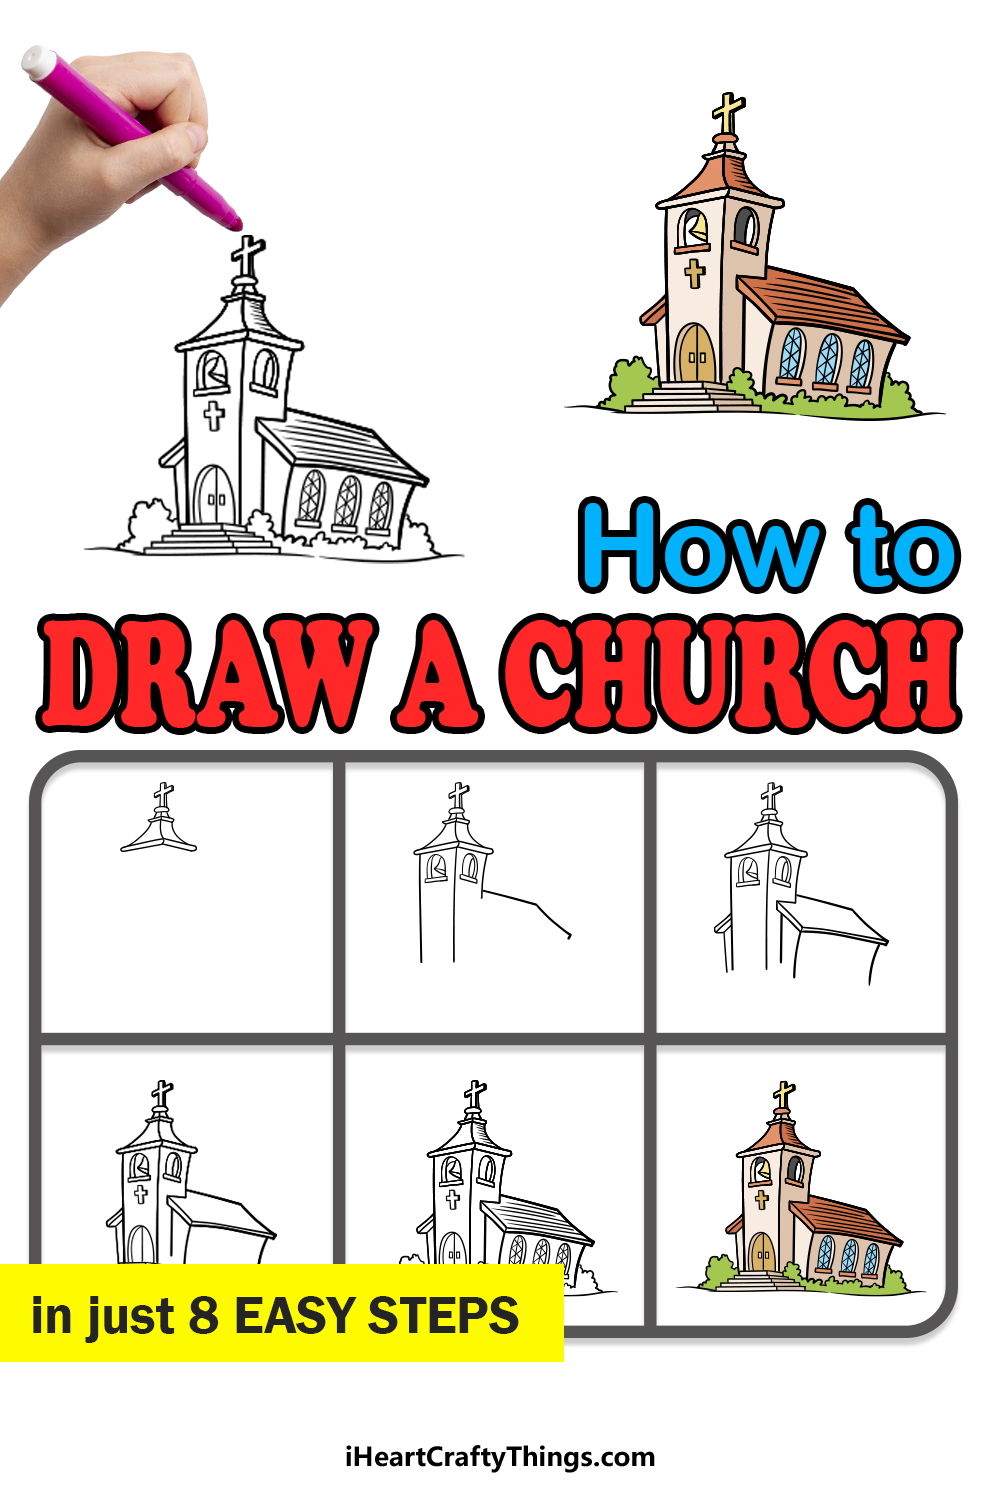 how to draw a church in 8 easy steps